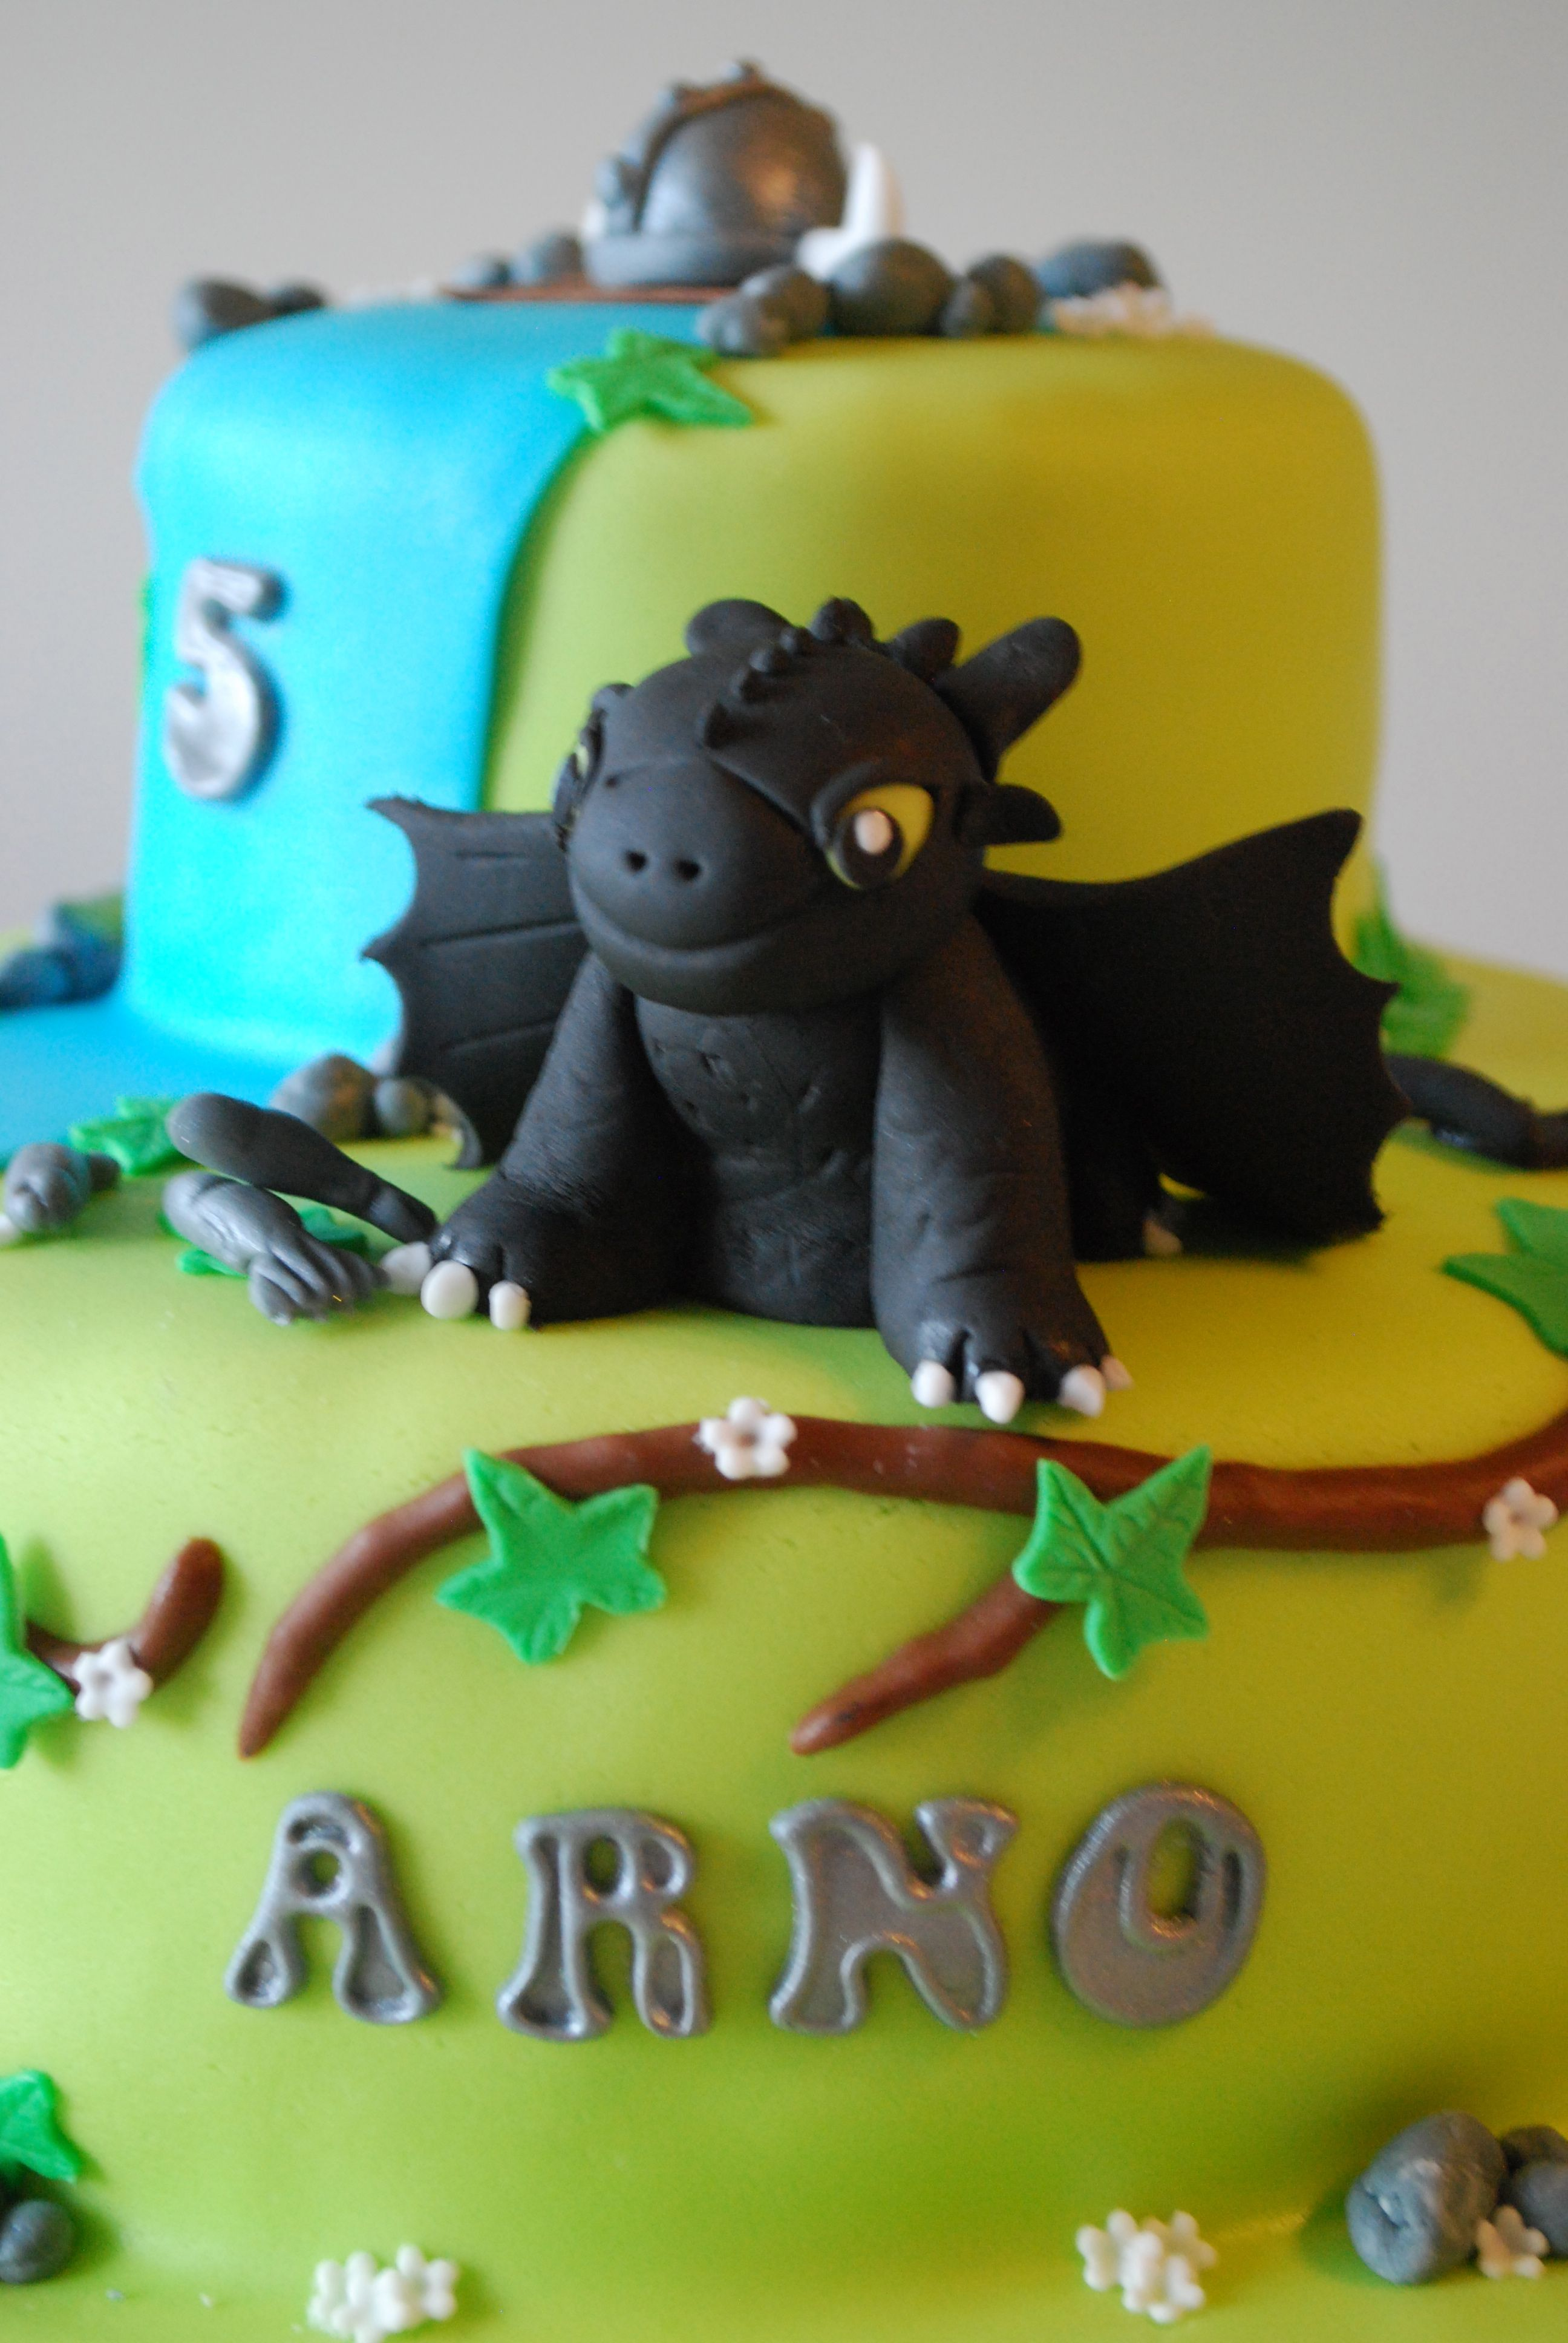 Toothless, how to train a dragon!